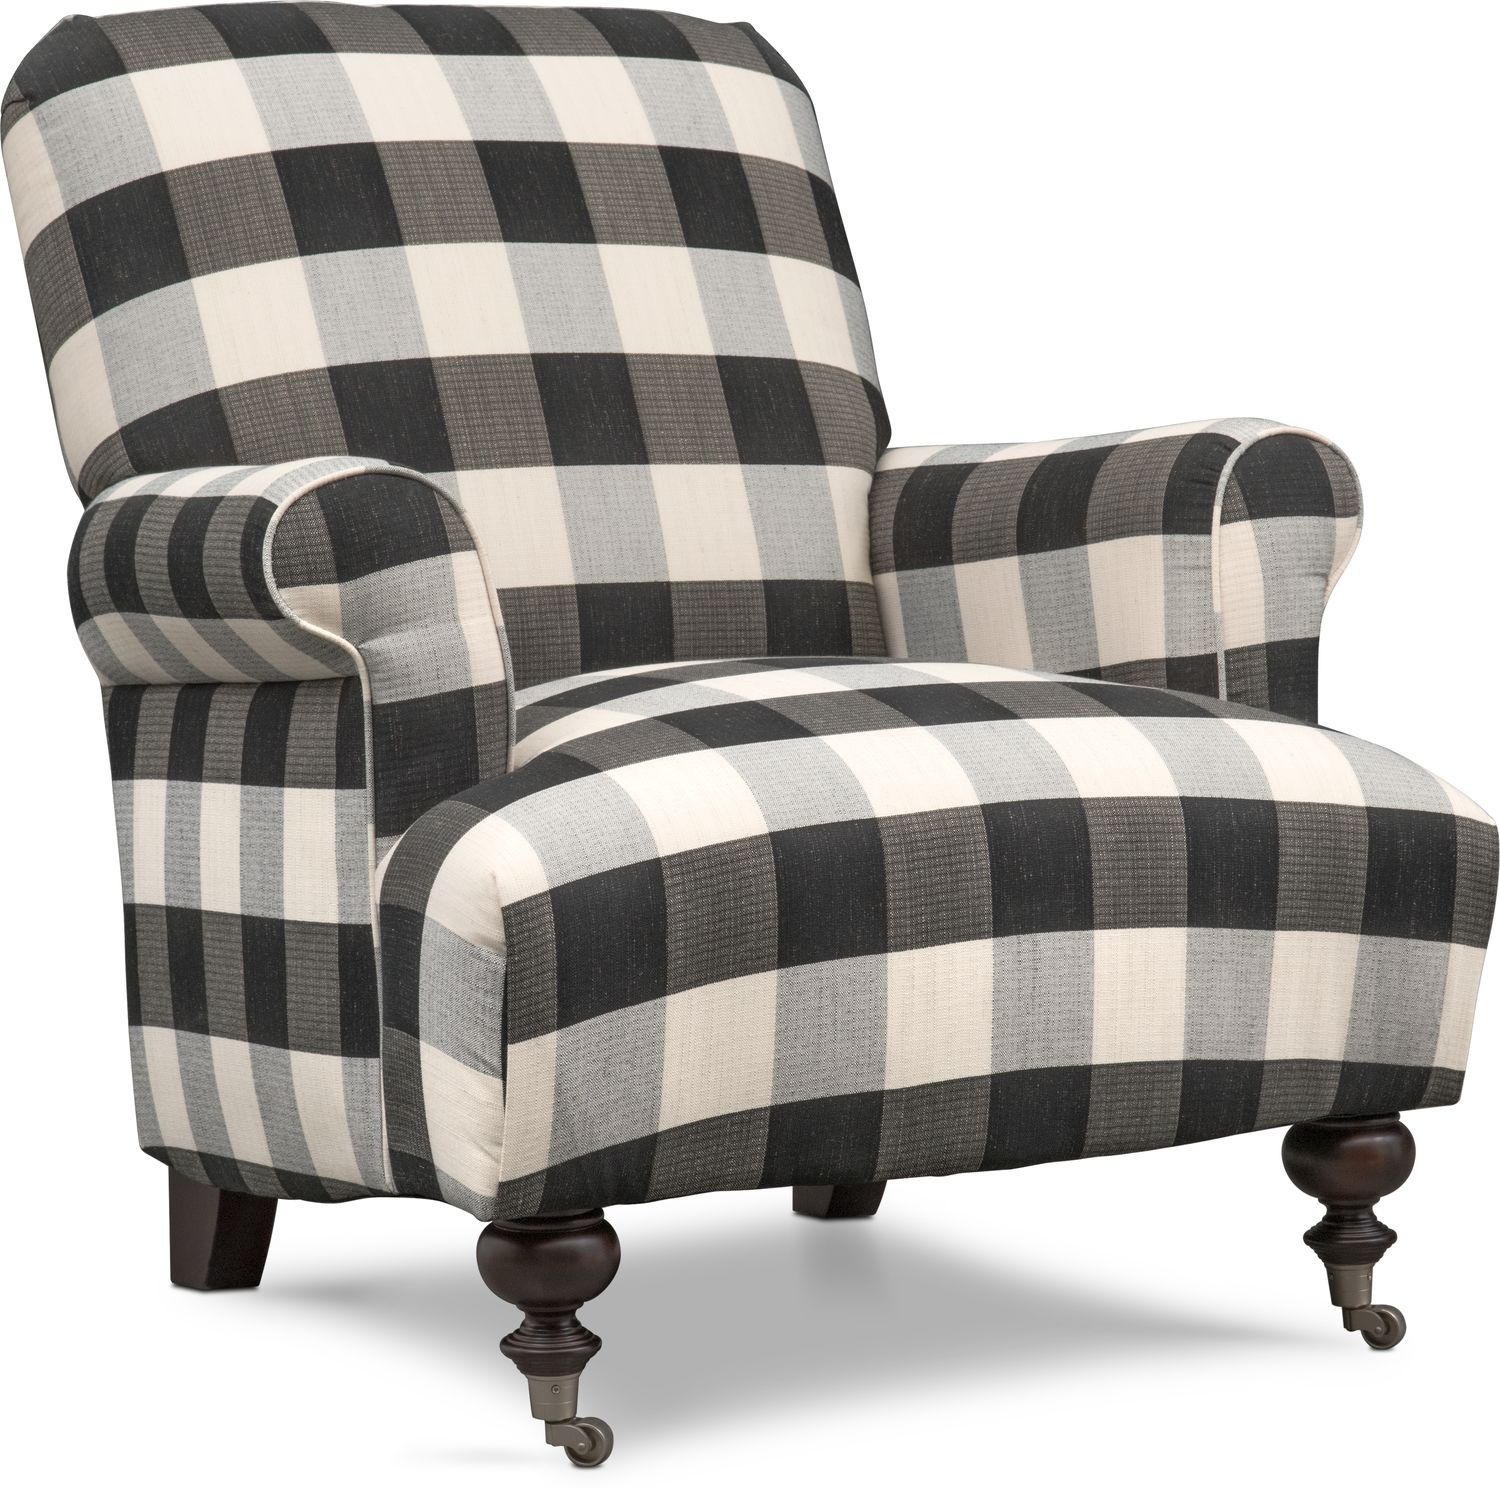 Living Room Furniture - Rhys Accent Chair